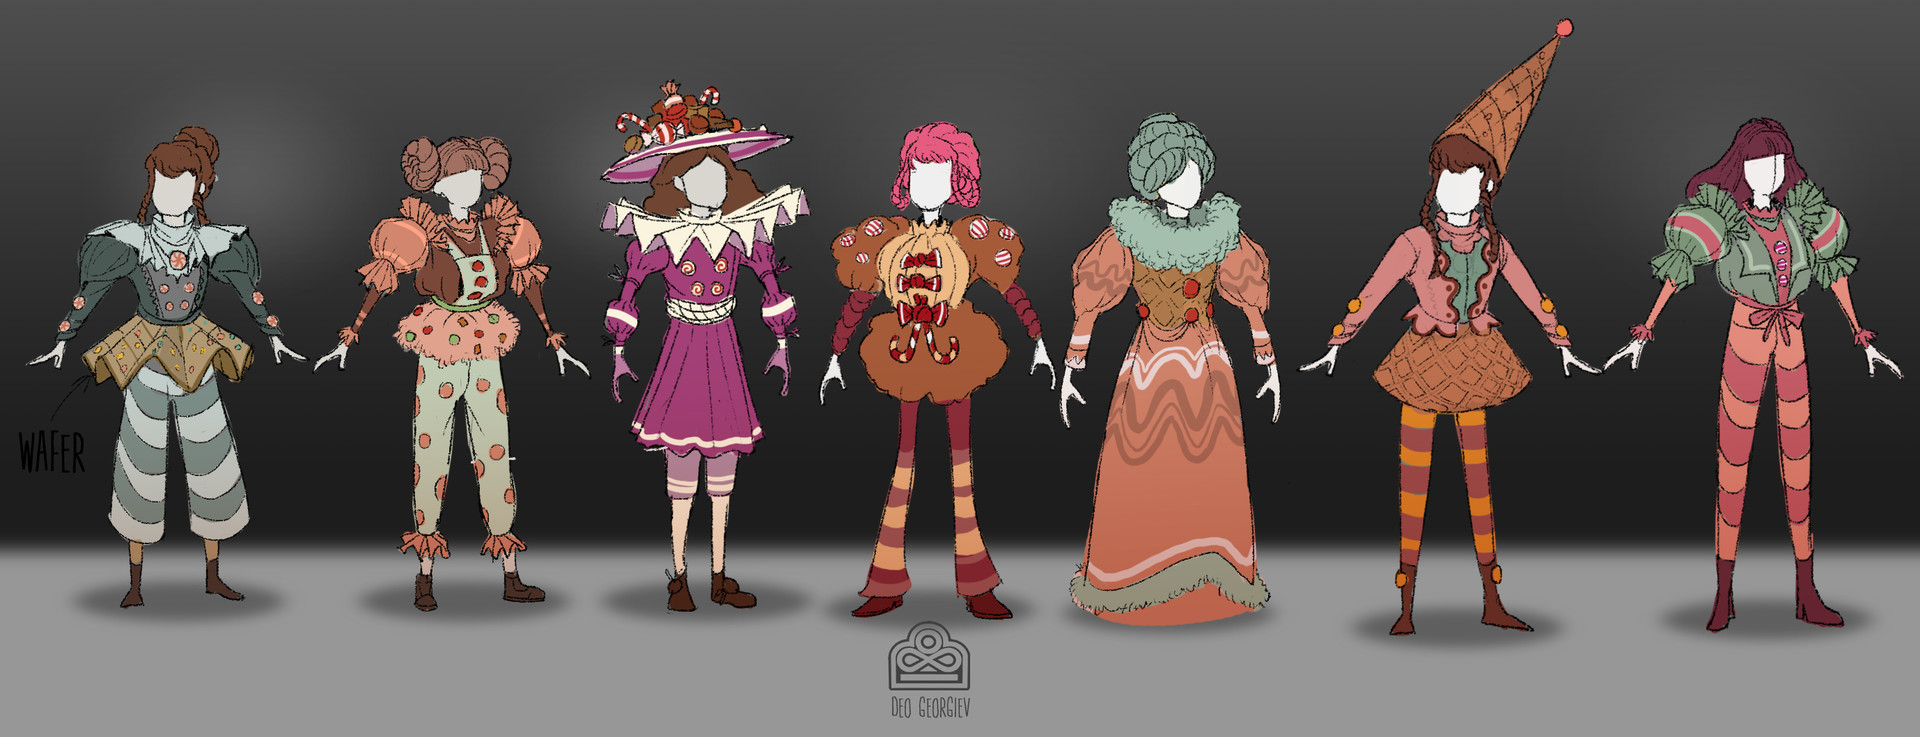 Stage 1 Costume Iterations